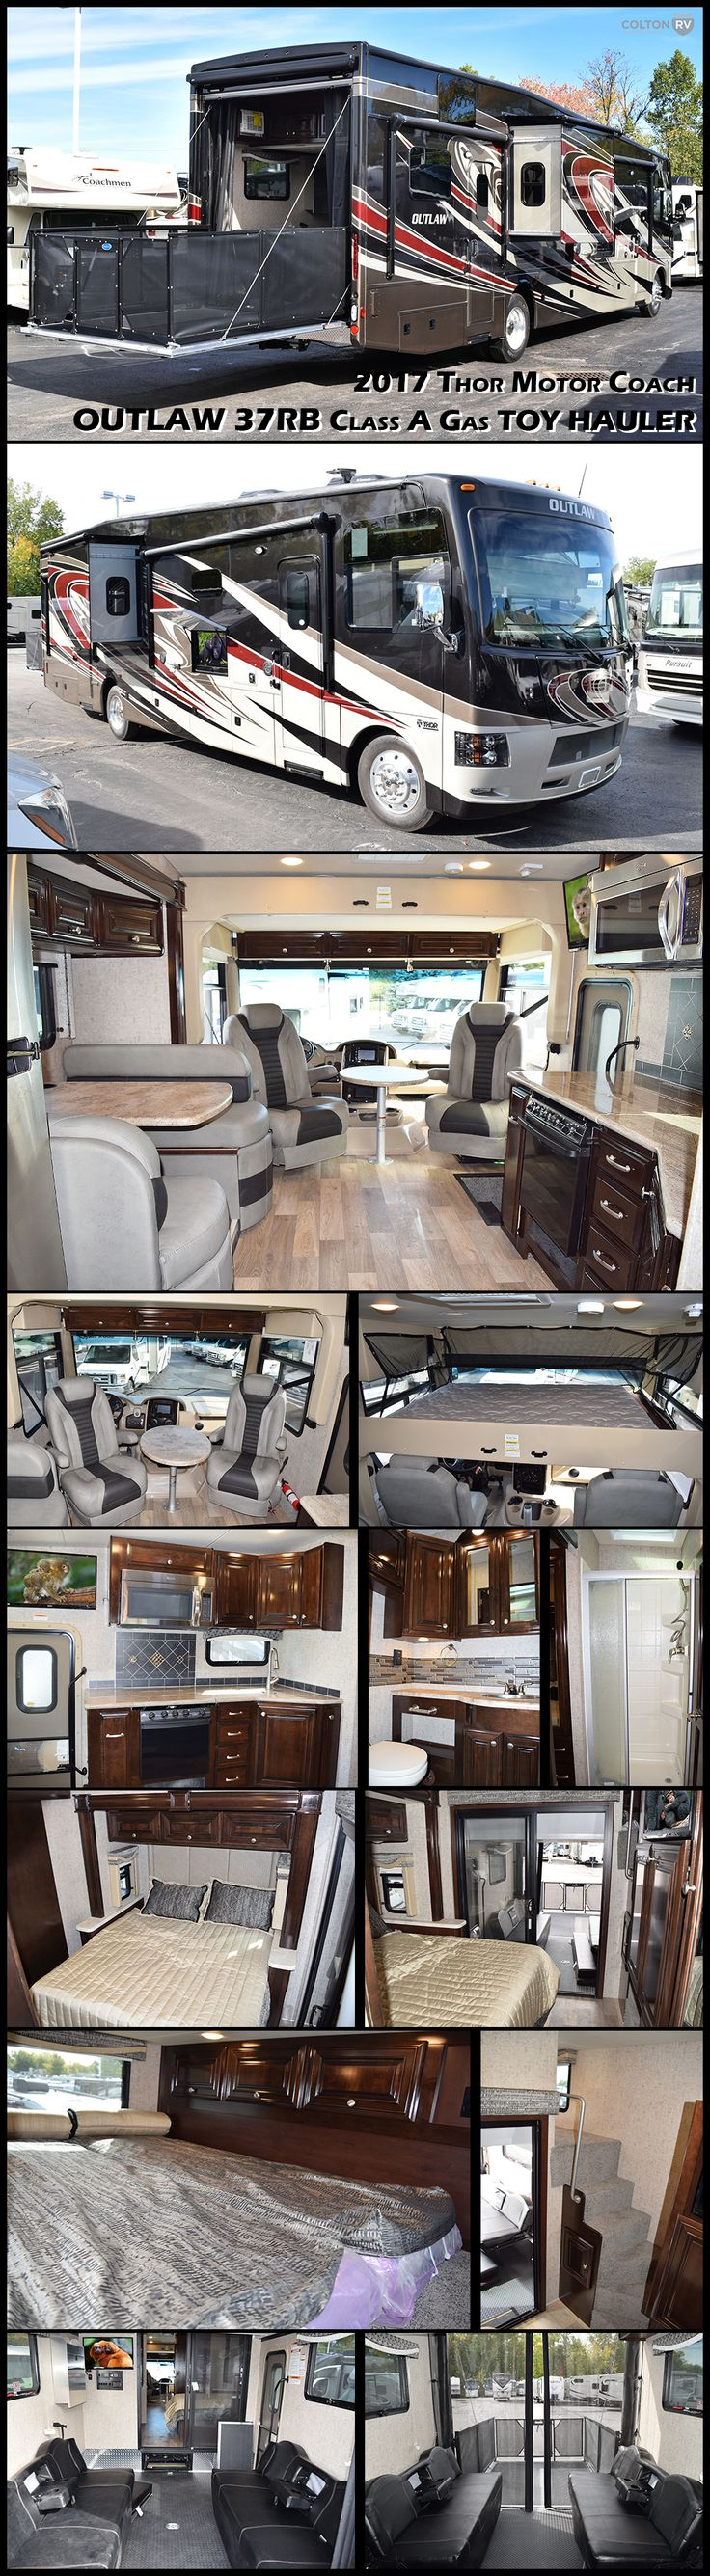 "This 2017 OUTLAW 37RB Class a Gas TOY HAULER by Thor Motor Coach has it all!! You can enjoy your outdoor toys with all the comforts of home! This motorhome features a 96"" x 122"" garage with an overhead loft for sleeping, two slide outs for added roominess inside, plus complete kitchen and bath amenities! Head towards the rear to find the master bedroom with slide out. For additional sleeping there is an overhead drop down bunk above the cab."